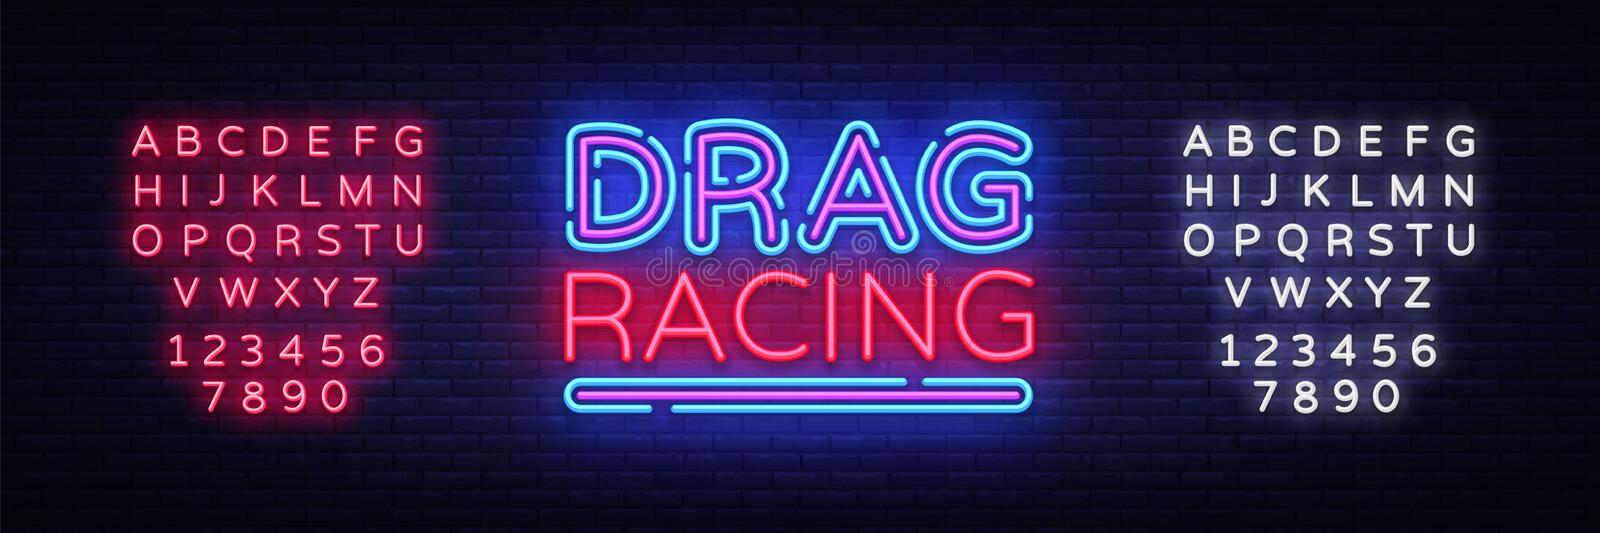 Drag Racing neon sign vector. Racing design template neon sign, light banner, neon signboard, nightly bright advertising. Light inscription. Vector royalty free illustration